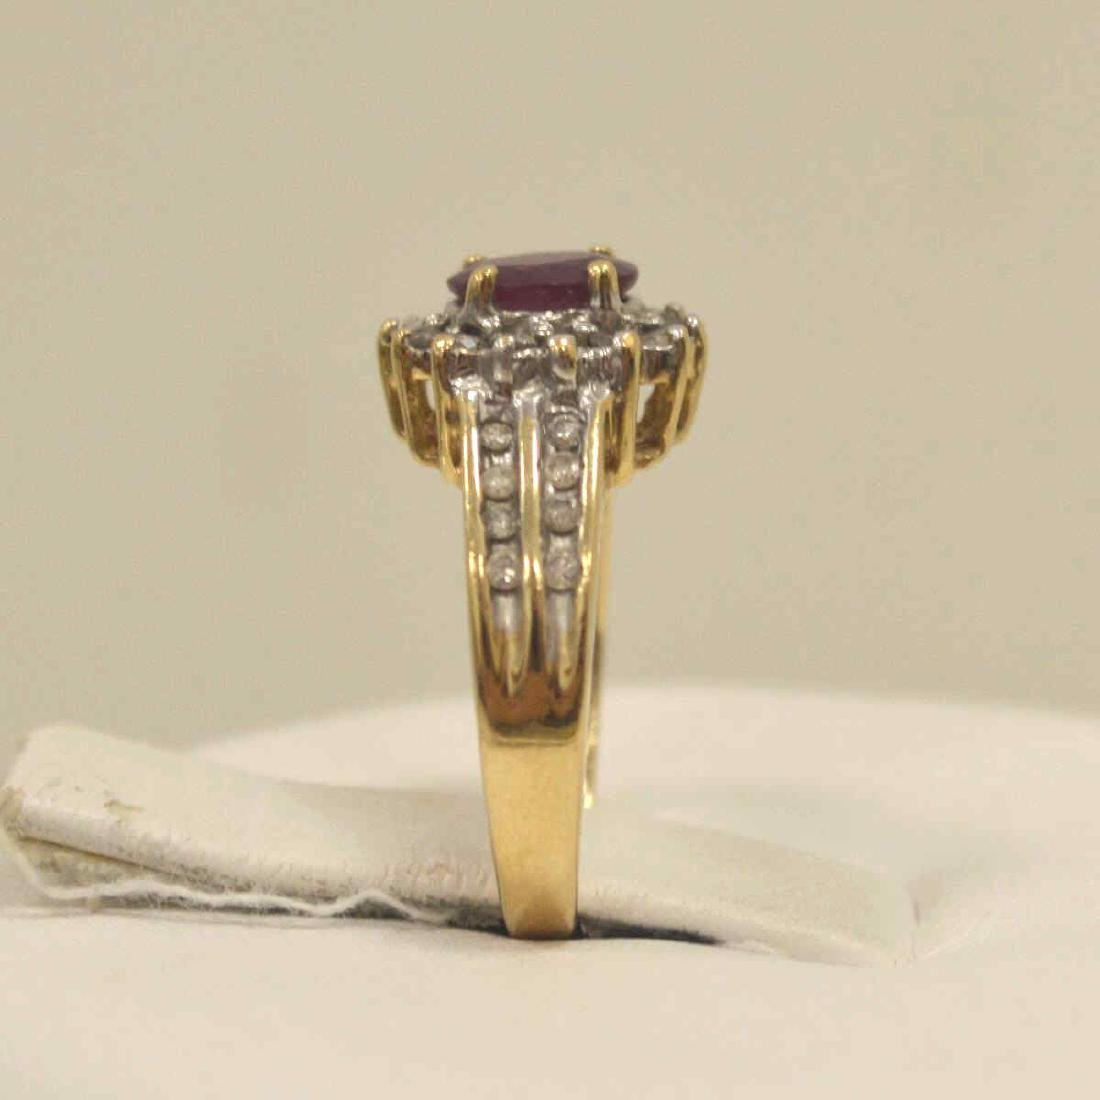 10kt yellow gold ruby and diamond ring - 4